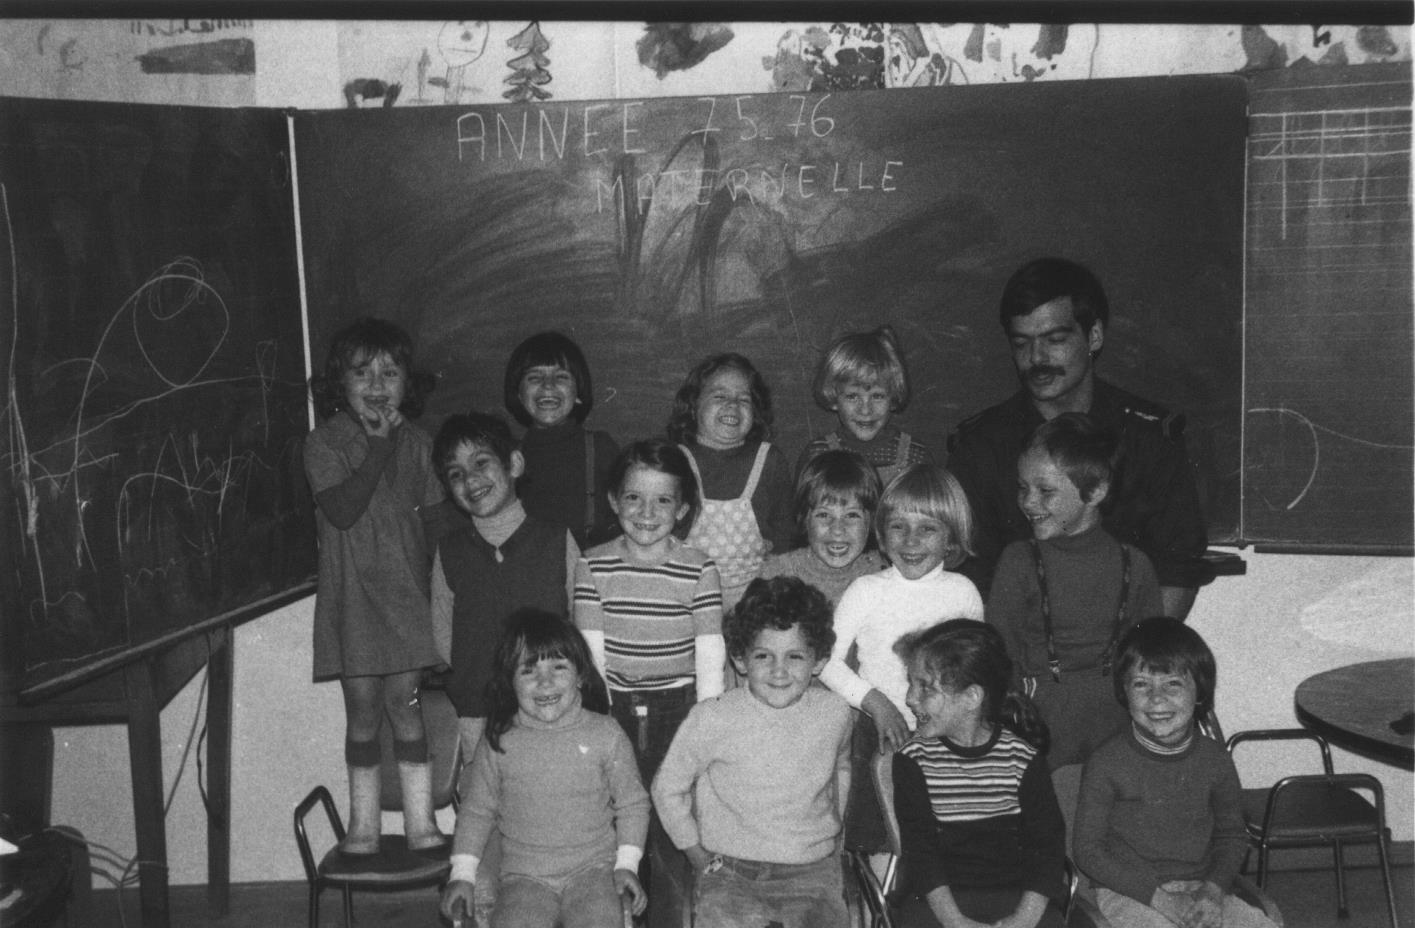 Rfa 72 76 bad lauterberg la section maternelle de l ecole du de 36 1